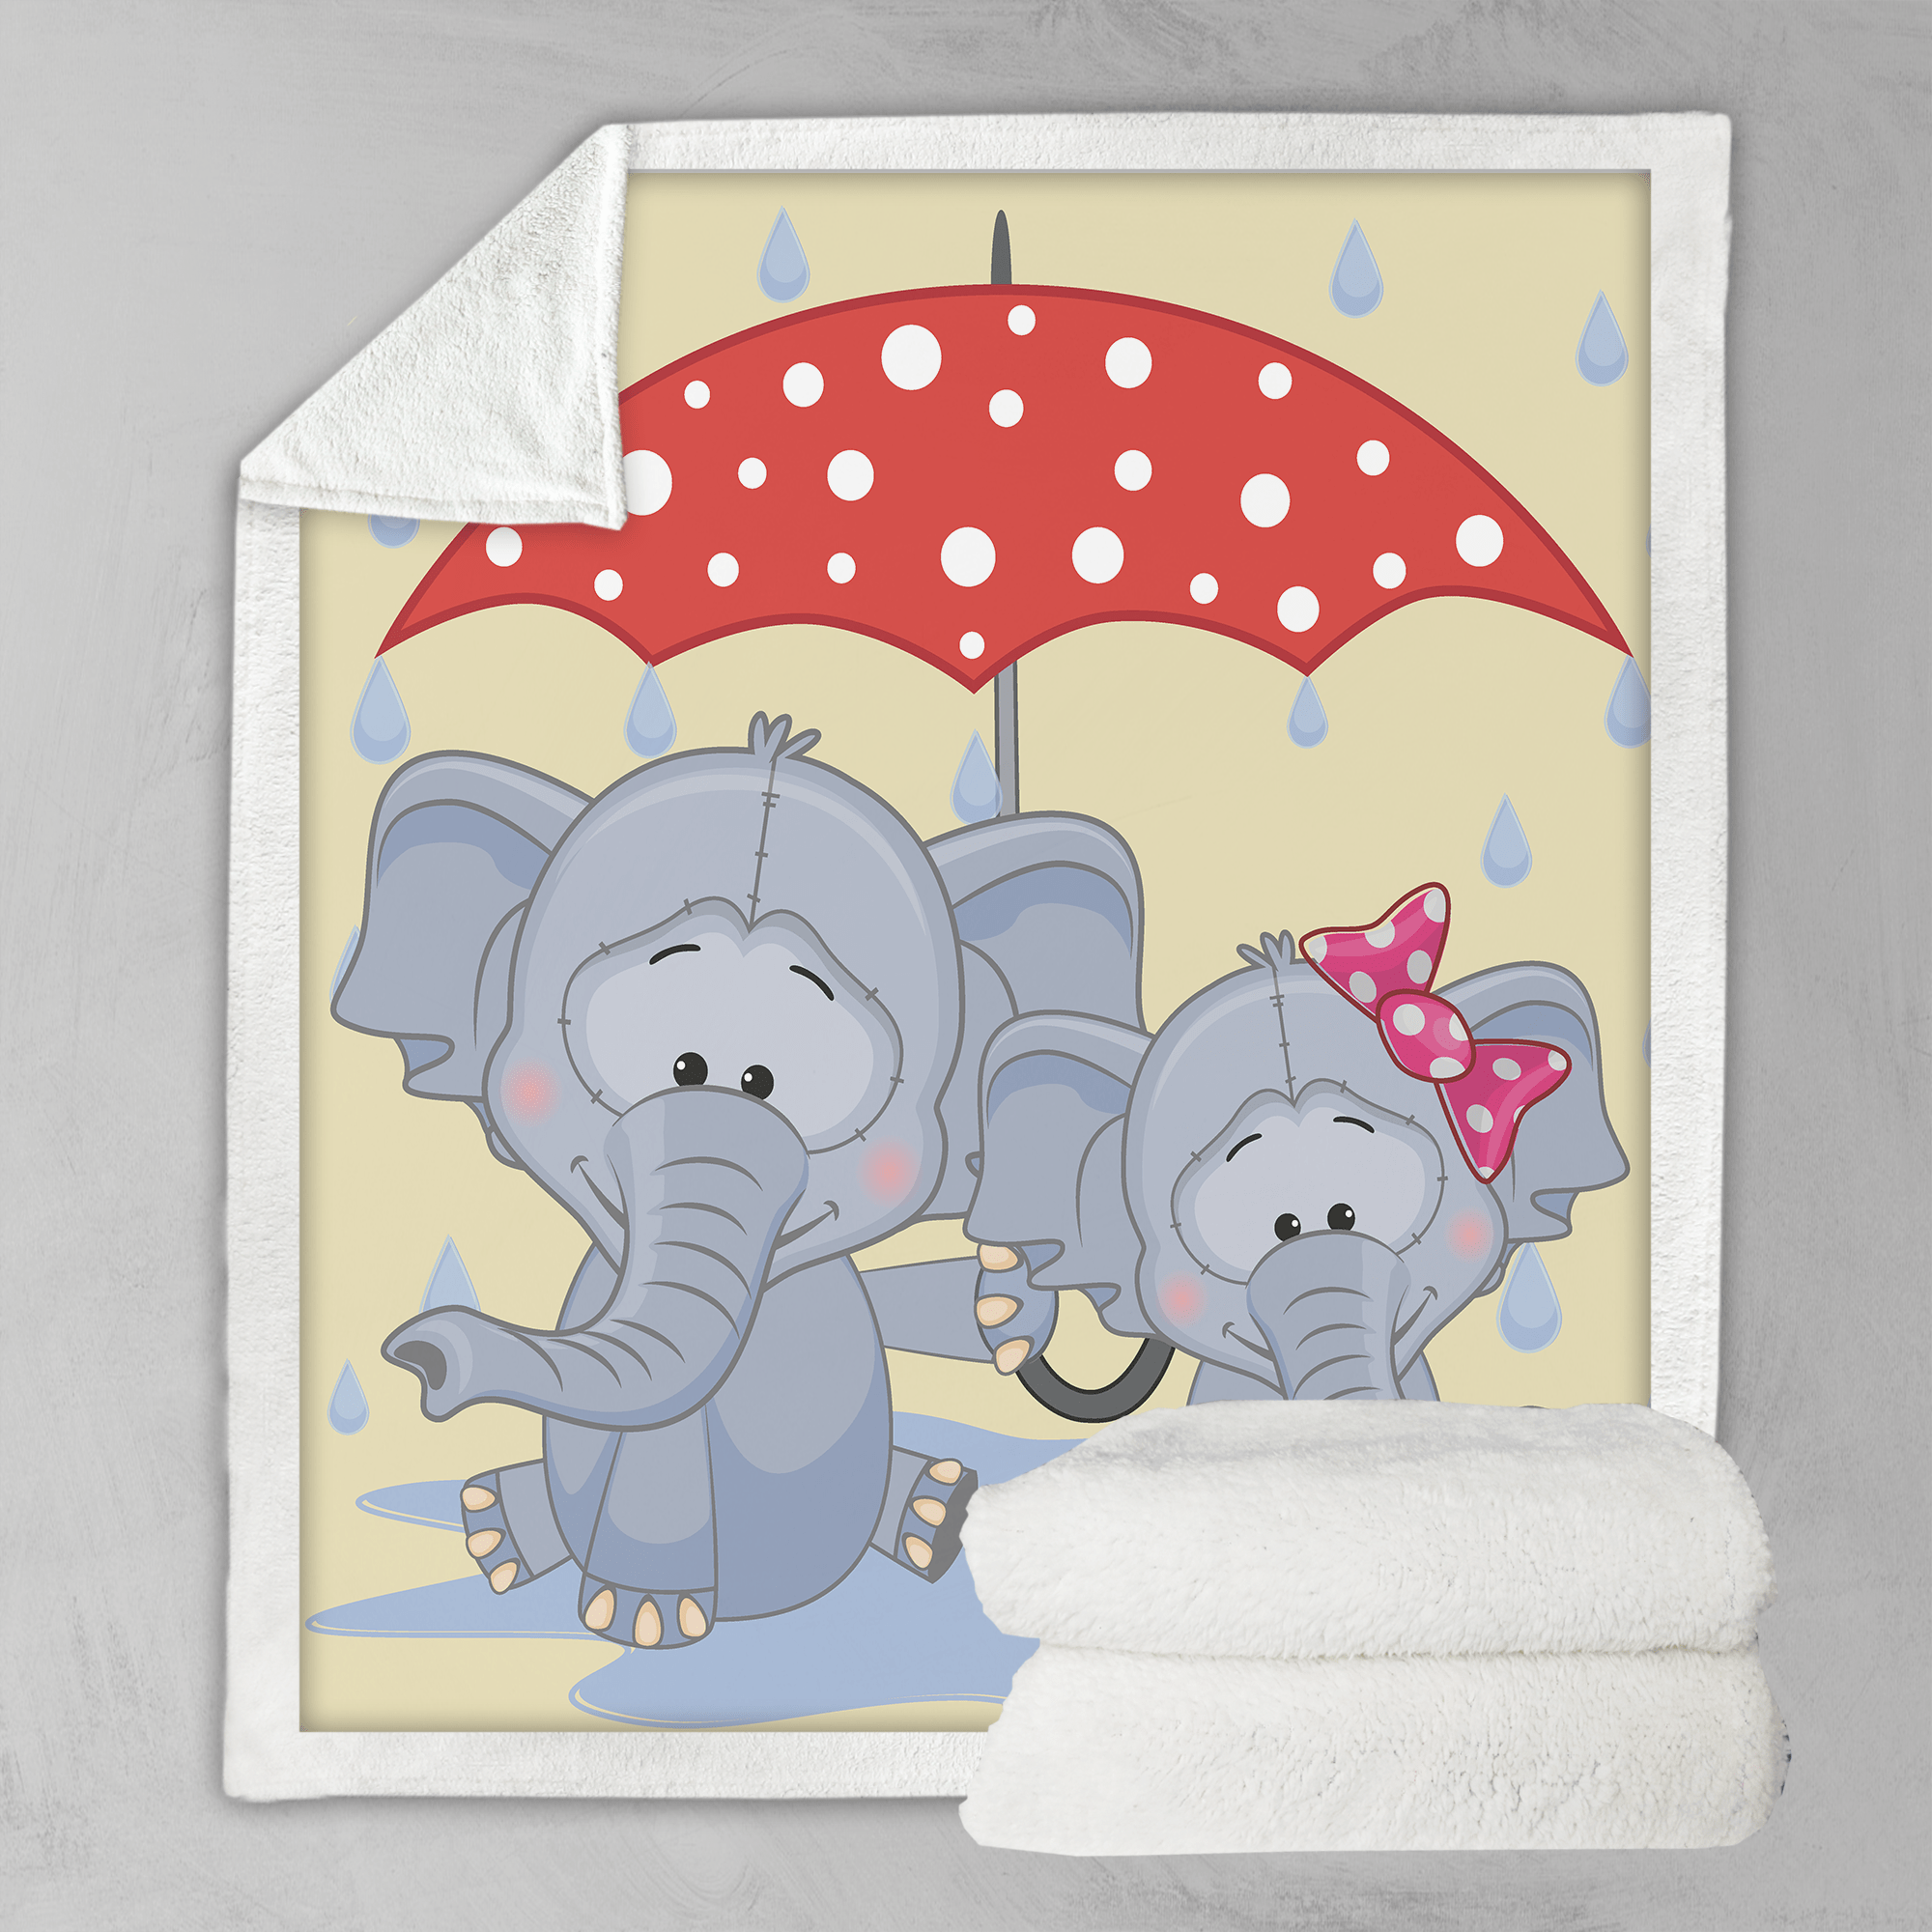 Umbrella Animals - Elephants Blanket-Umbrella Animals - Elephants-Little Squiffy